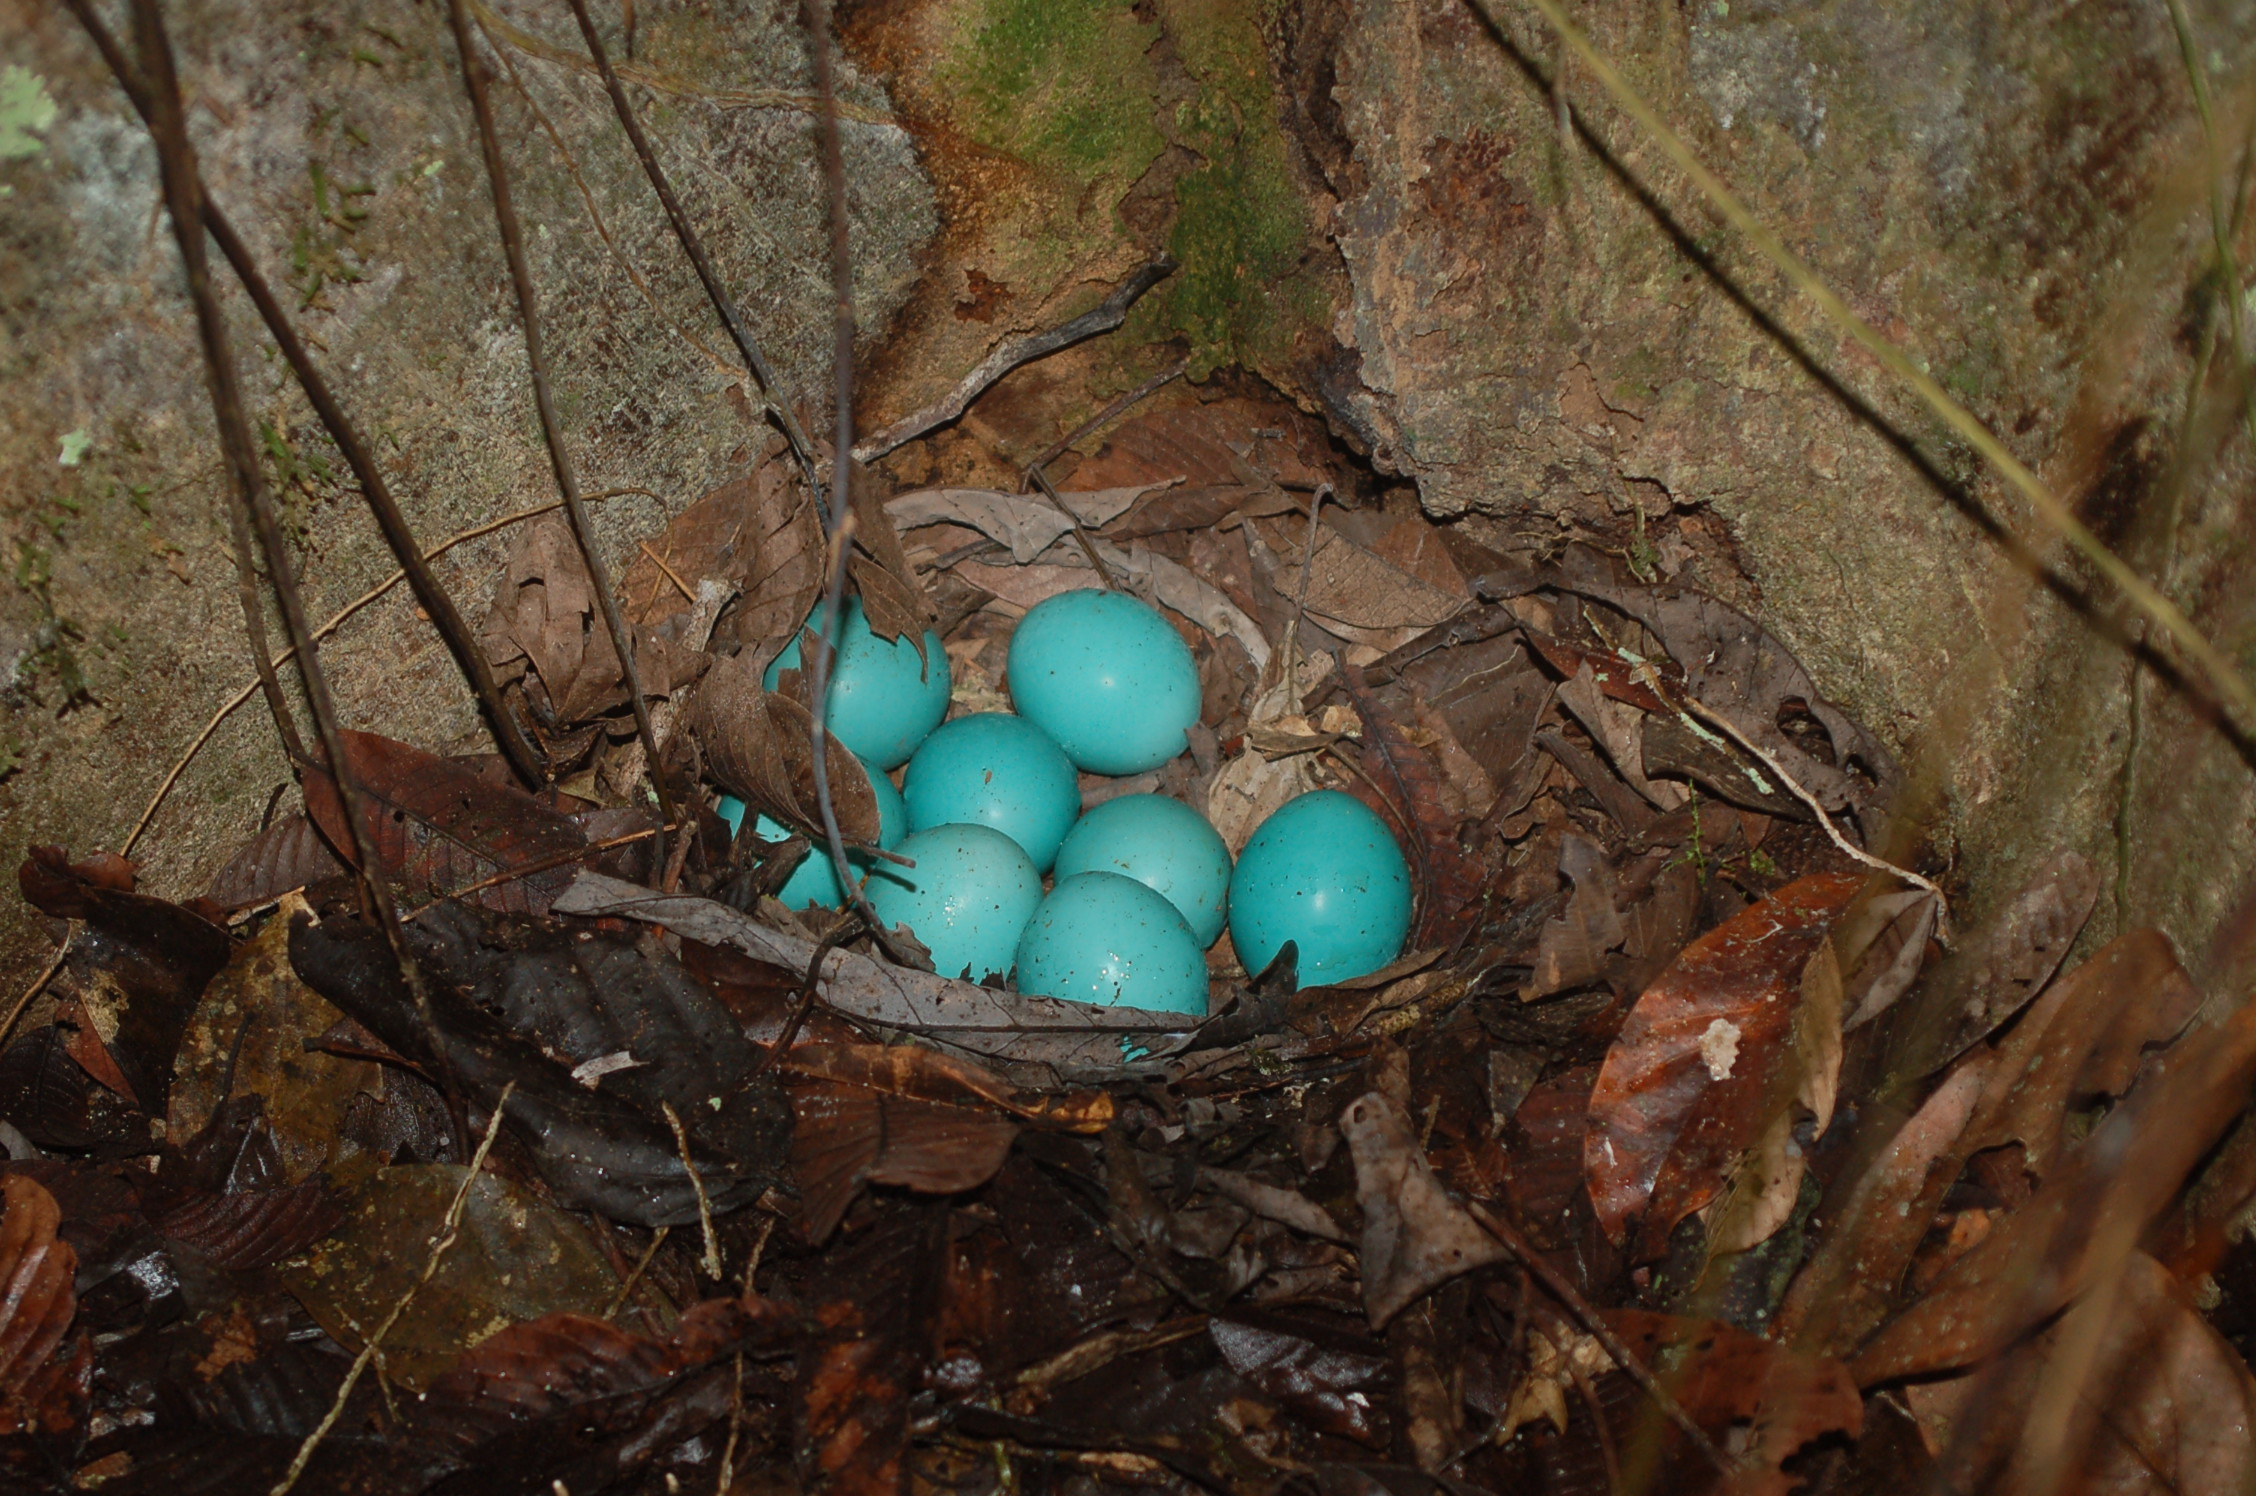 Brennan 2010 Aimed To Understand The Predation Of Great Tinamou Clutches And Tried Explain Why Eggs Are Not Camouflaged